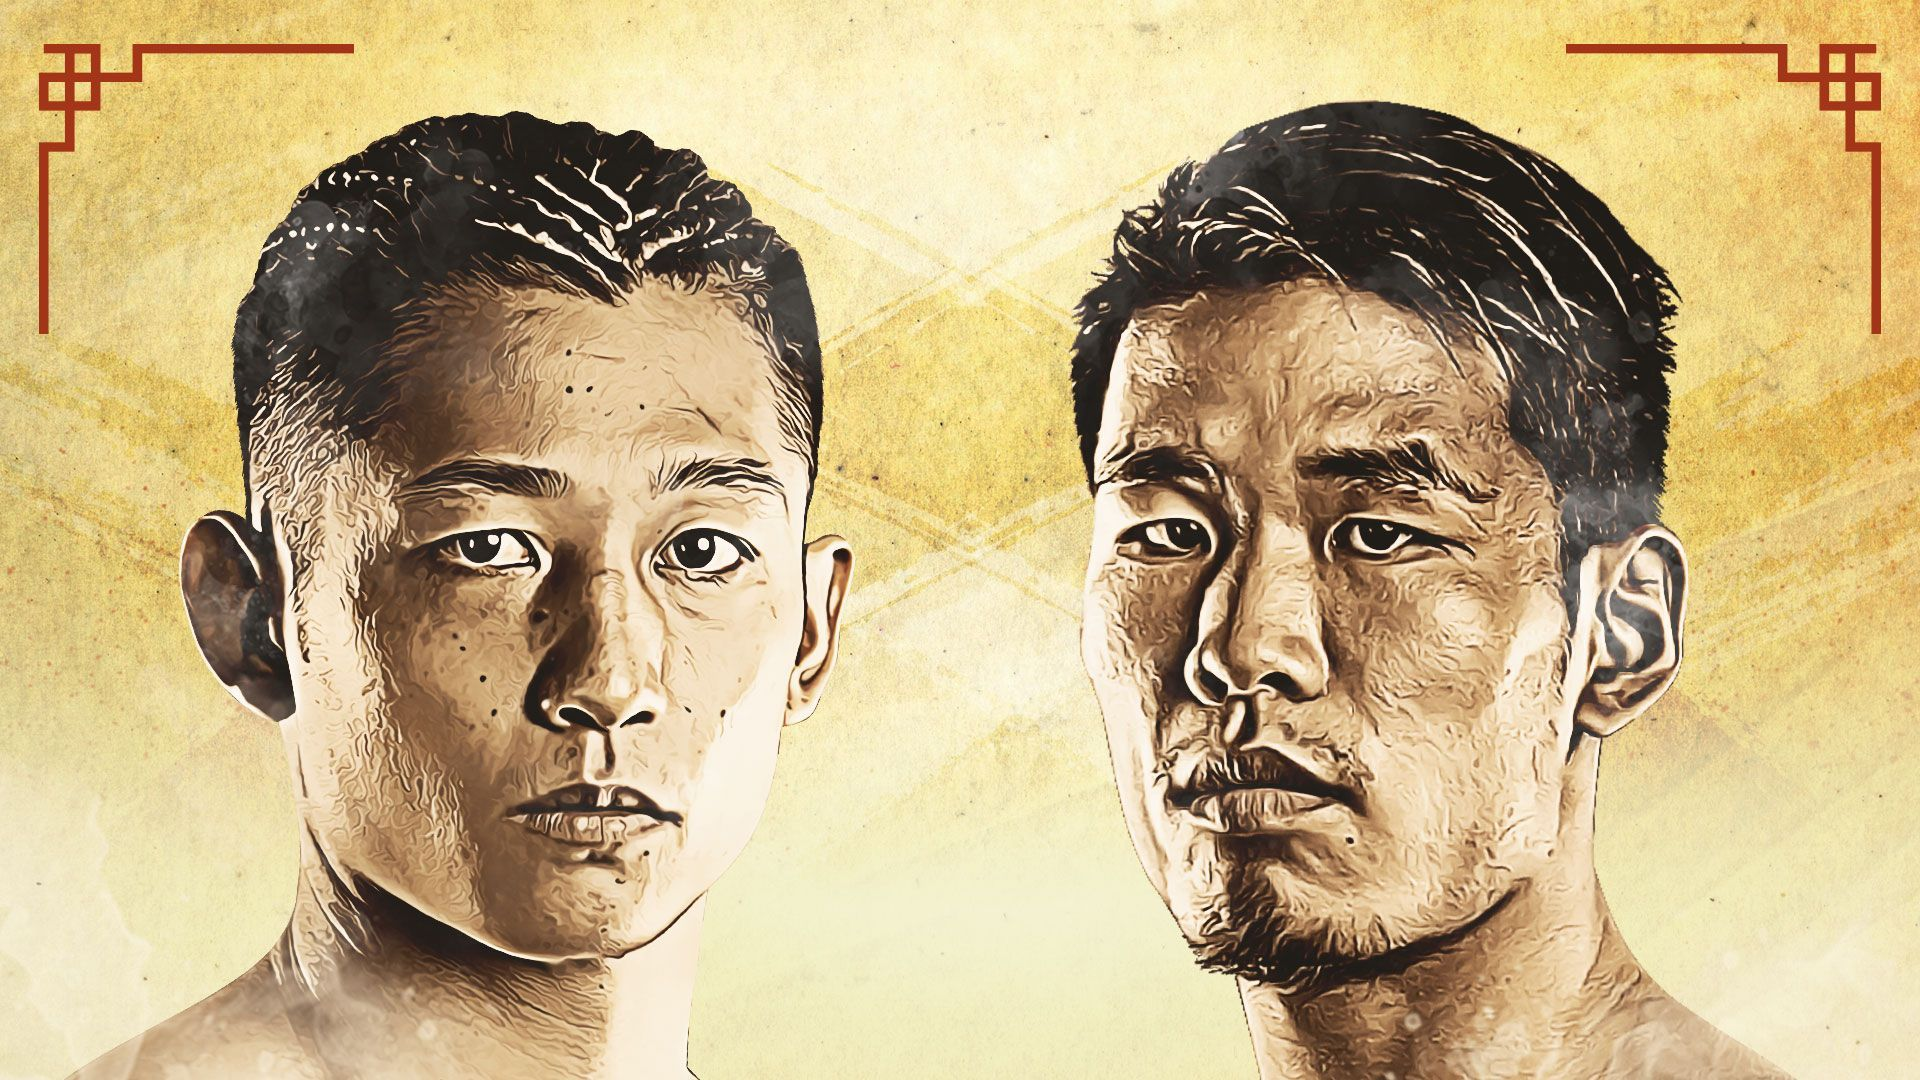 Hiroki Akimoto vs. Zhang Chenglong II goes down at ONE: FISTS OF FURY II on 26 February!